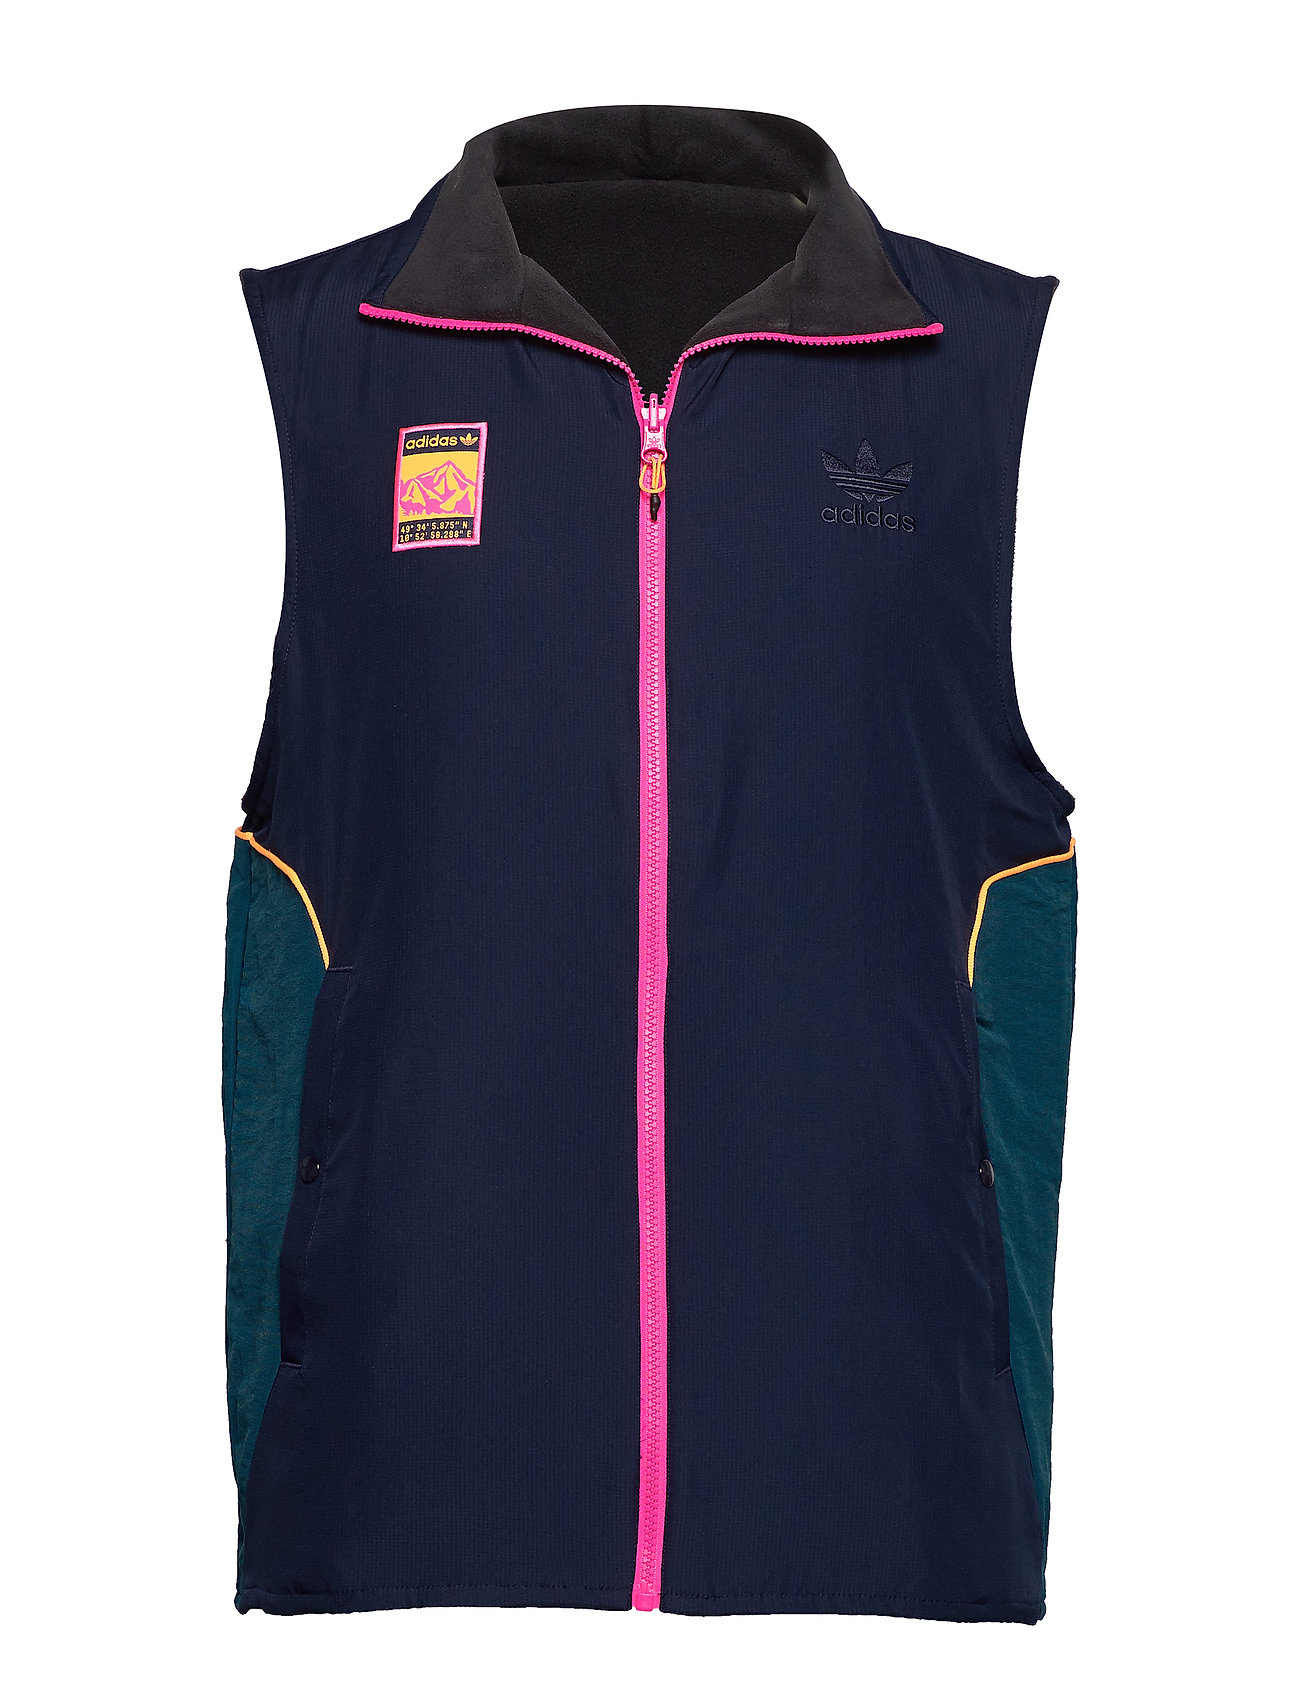 adidas Originals VEST - BLACK/MULTCO